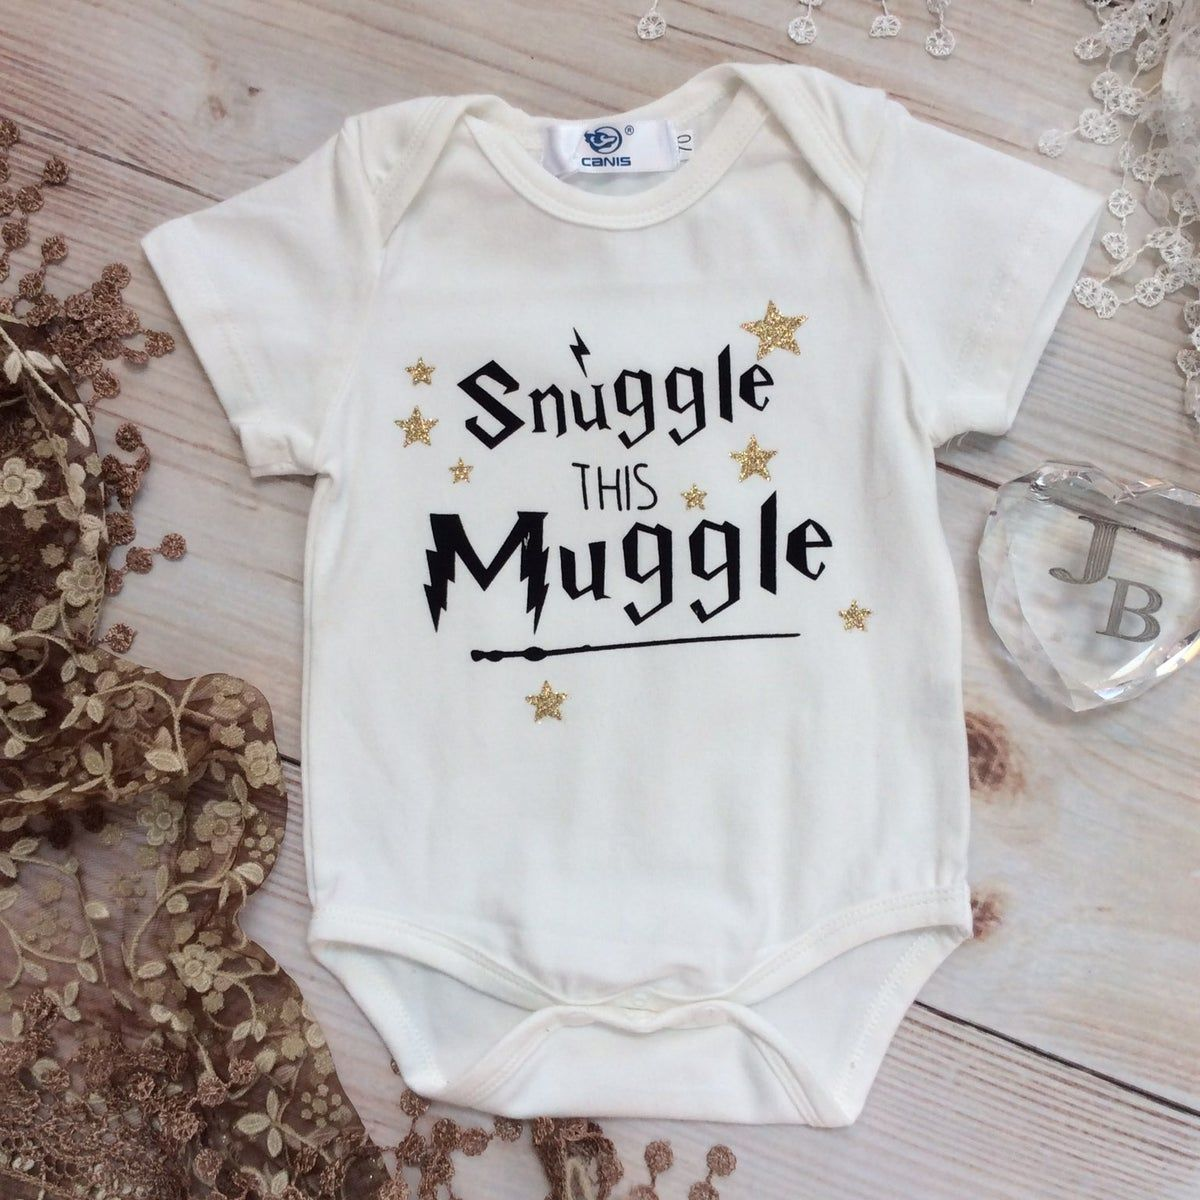 Snuggle This Muggle Harry Potter Inspired Onesie Funny Baby Onesie Sayings